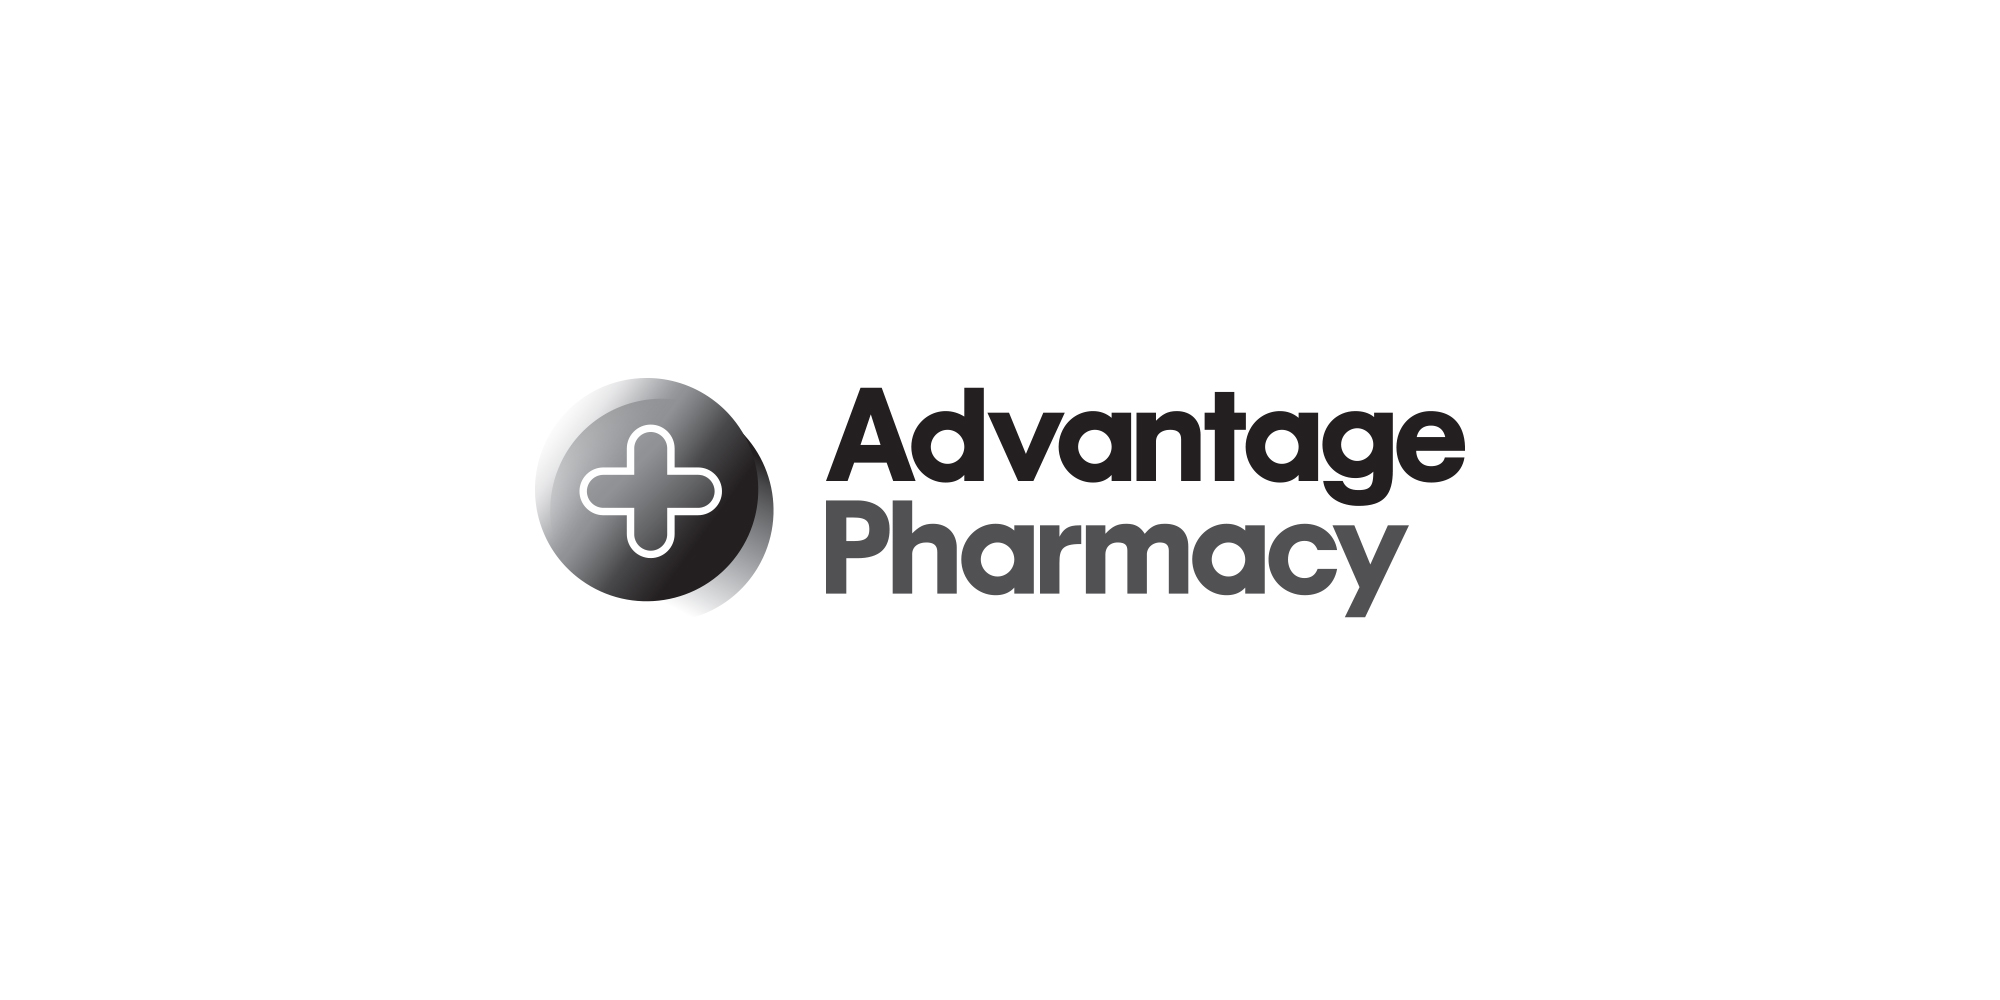 Advantage Pharmacy Branding